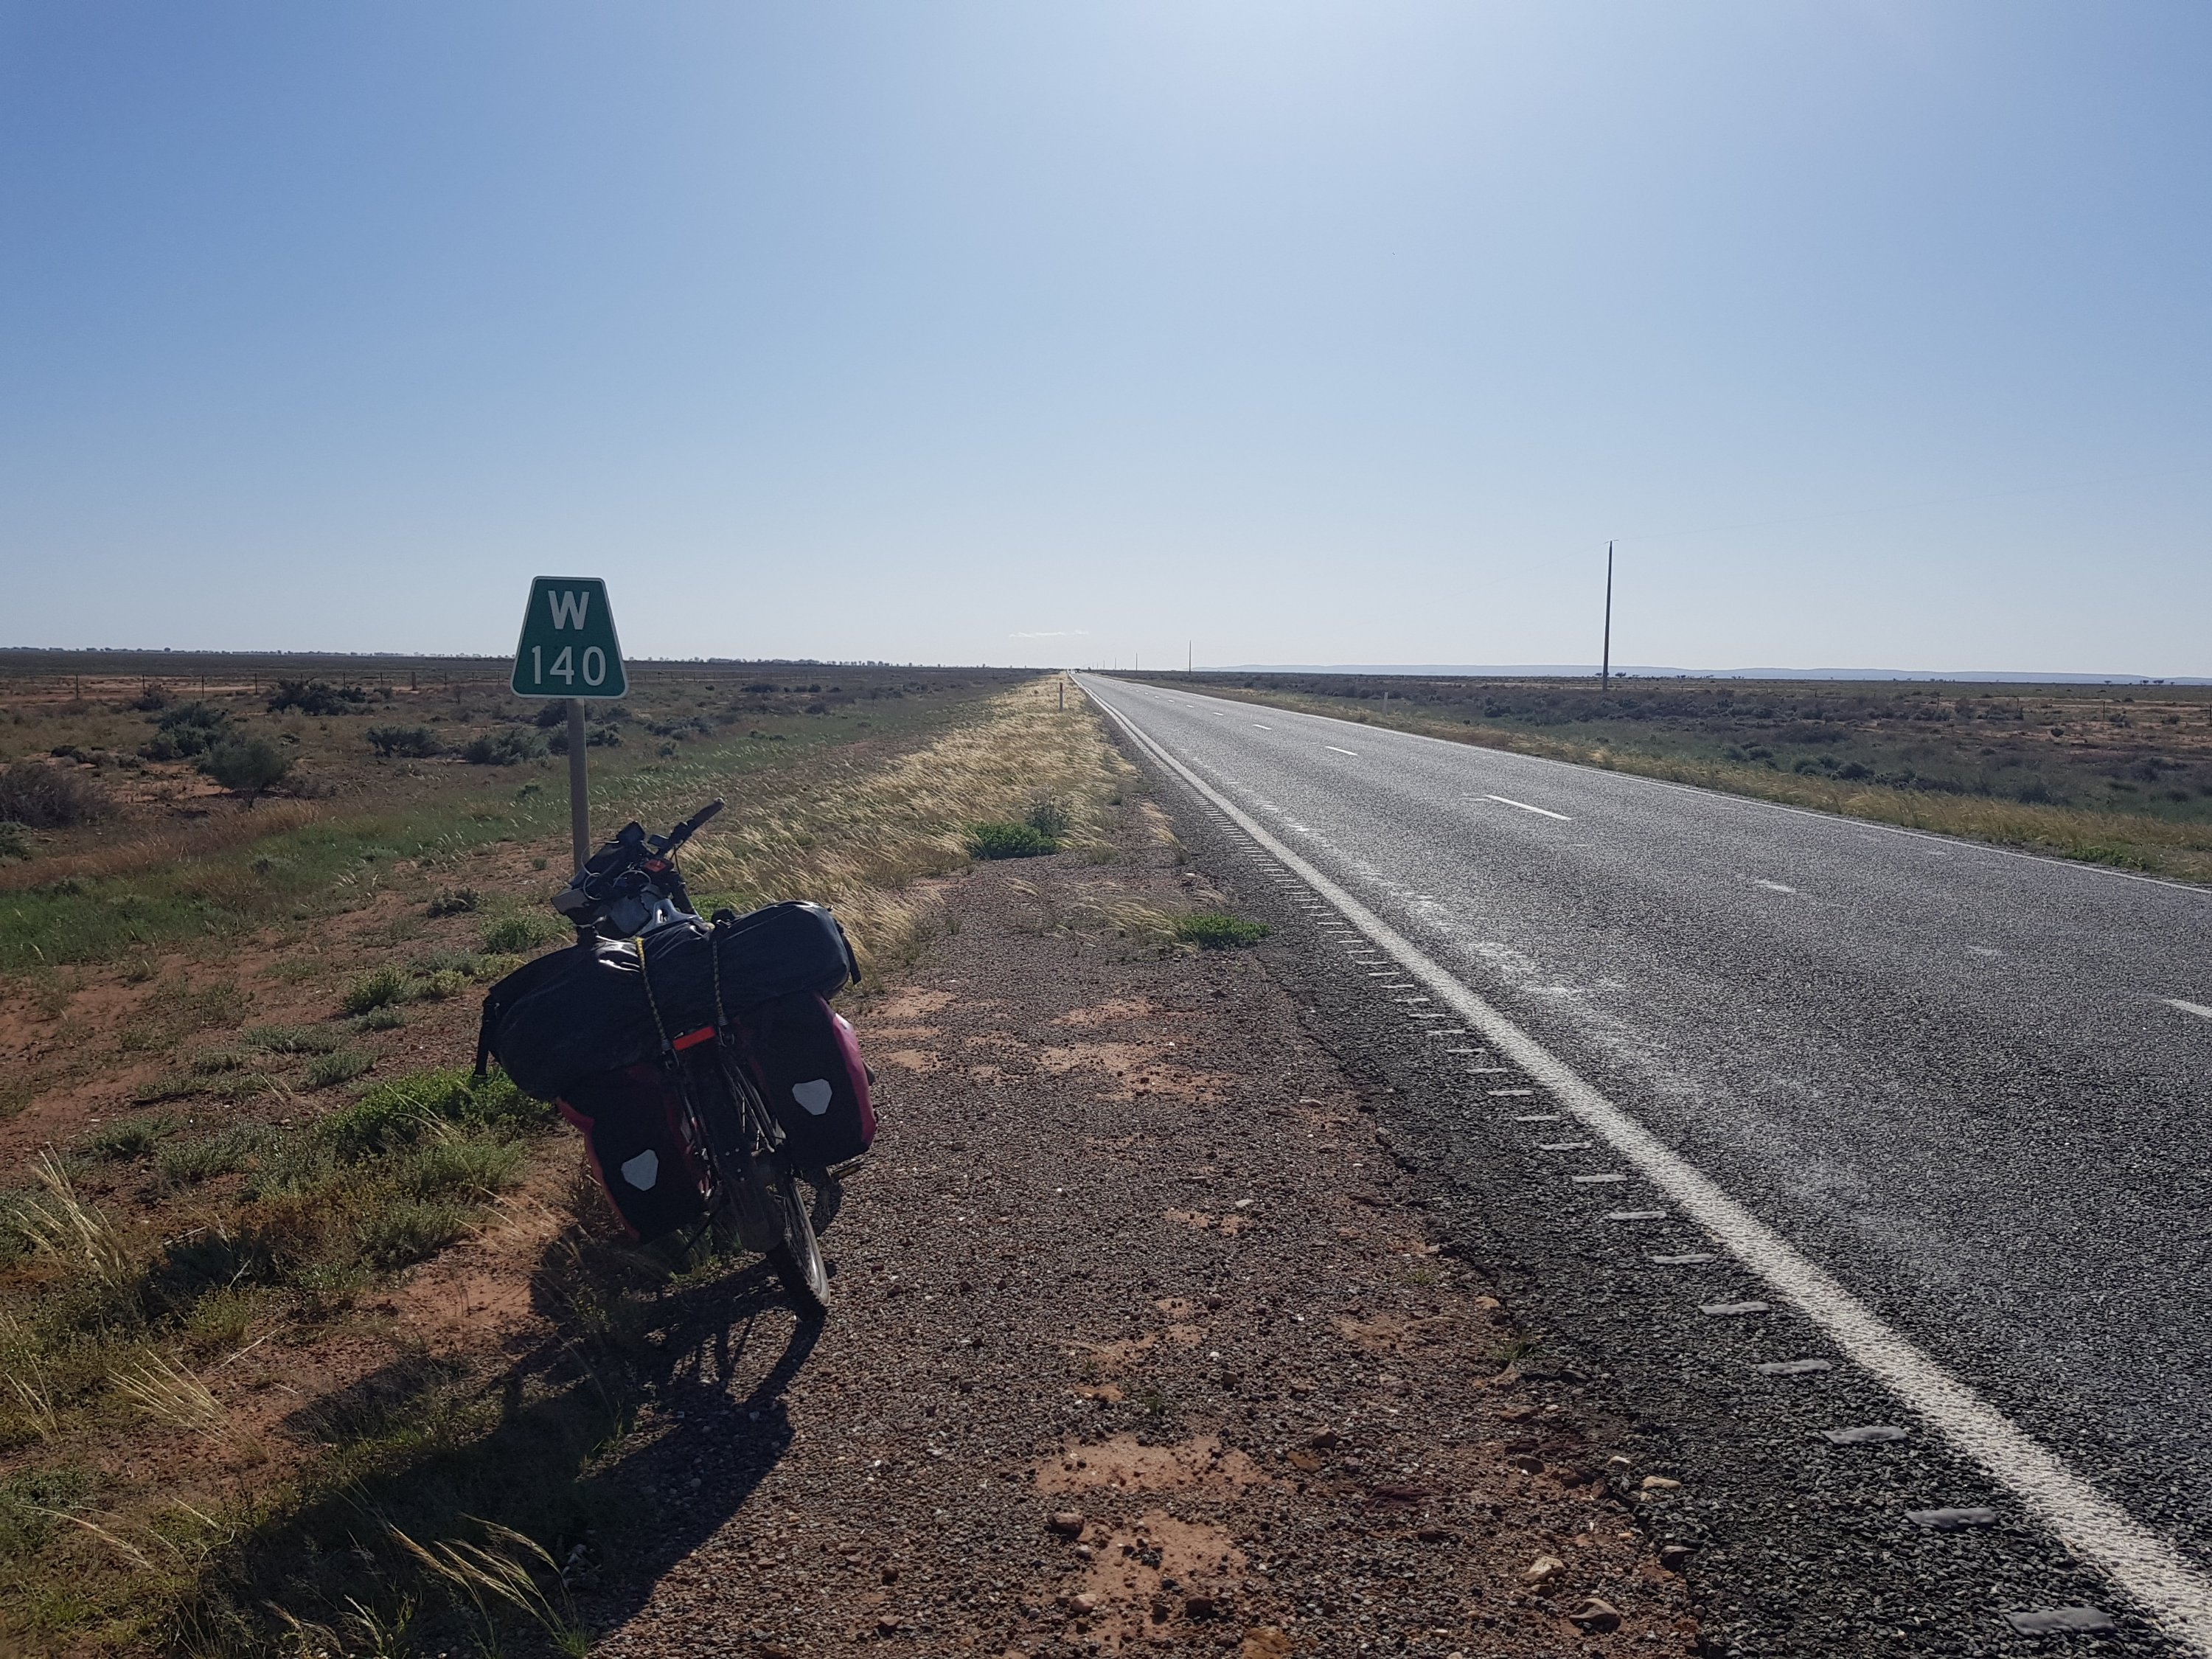 The road to Wilcannia